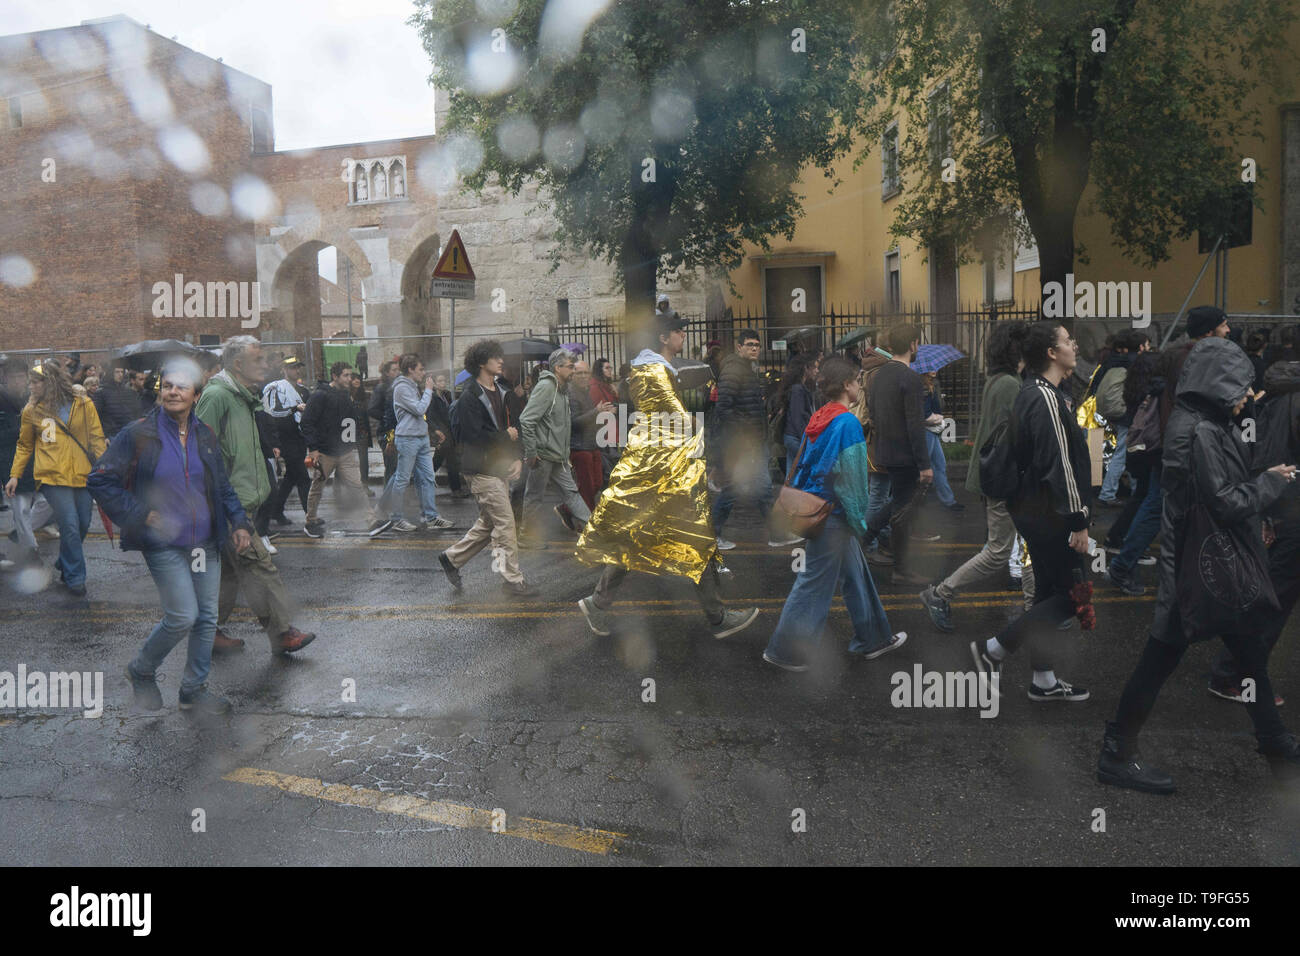 Milano, Lombardia, Italy. 18th May, 2019. Demonstrators seen walking in the rain during the protest.The feminist movement Non Una di Meno, together with other Italian associations, protested against the European election's closing meeting with Matteo Salvini, leader of the Populist Party the League and Italian Ministry of Interior and Vice Premier and Marine Le Pen and the uprising of fascism, far right, xenophobia and extremism in Europe. Credit: Valeria Ferraro/SOPA Images/ZUMA Wire/Alamy Live News - Stock Image